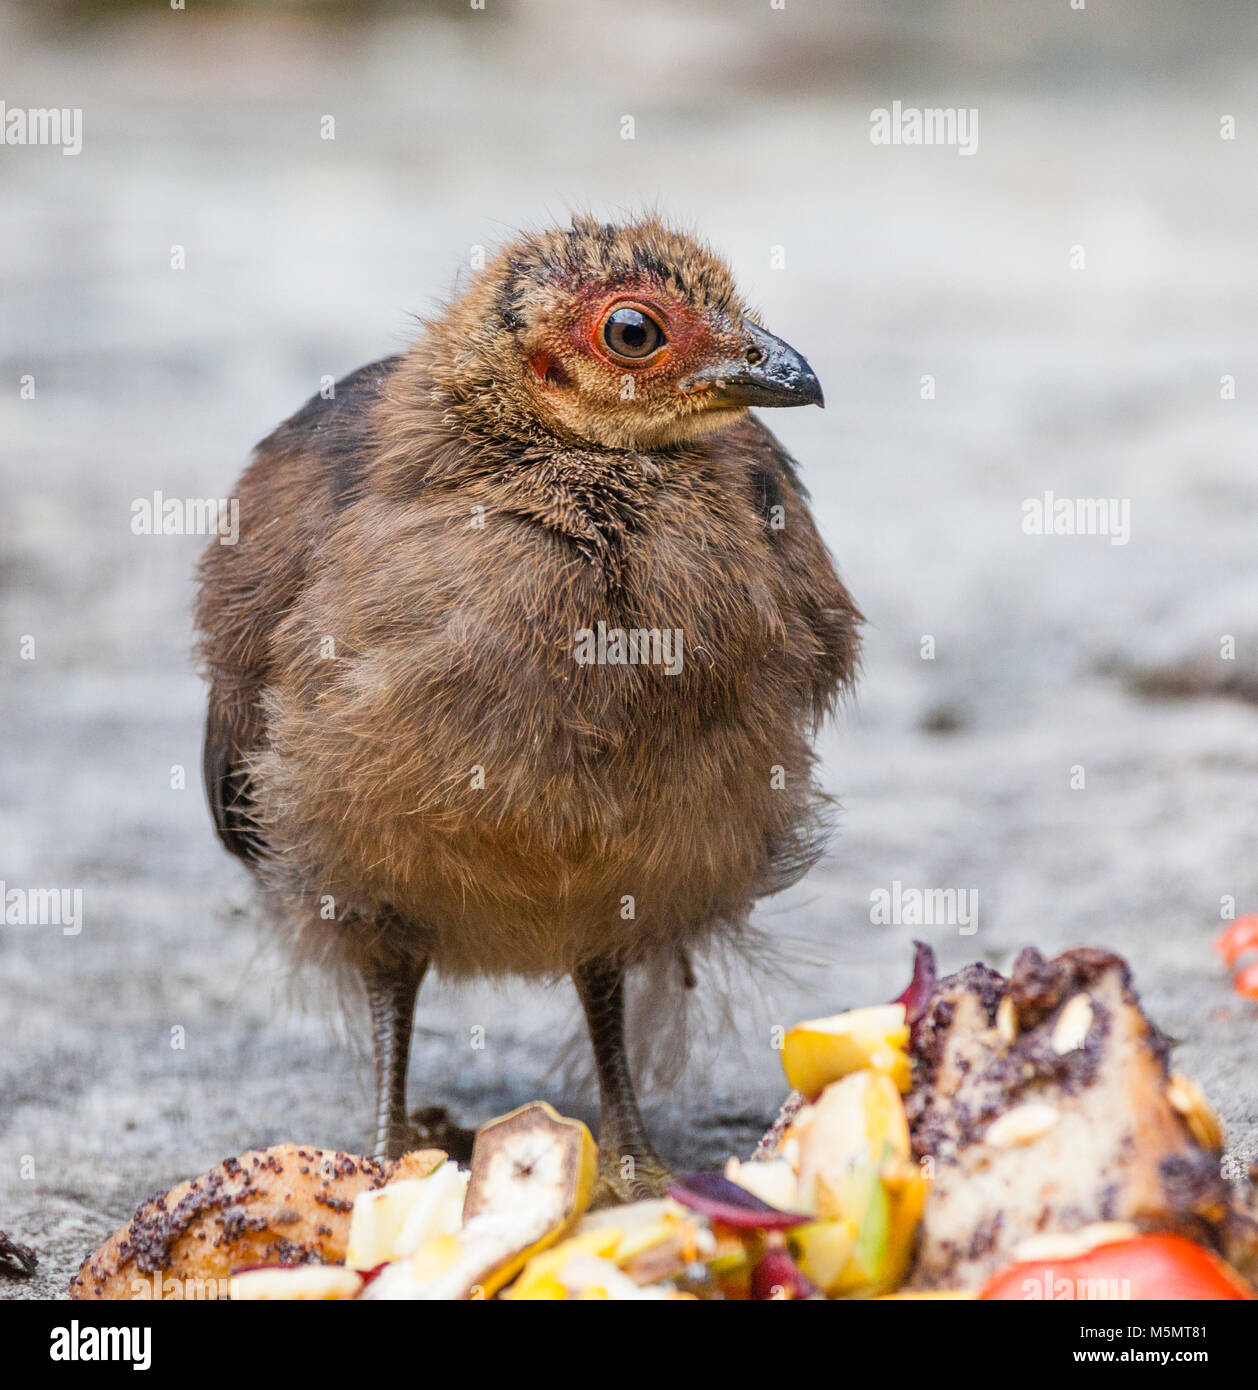 Australian Brush-turkey chick (Alectura lathami). Brush-turkey chicks have to fend for themselves right after hatching. - Stock Image